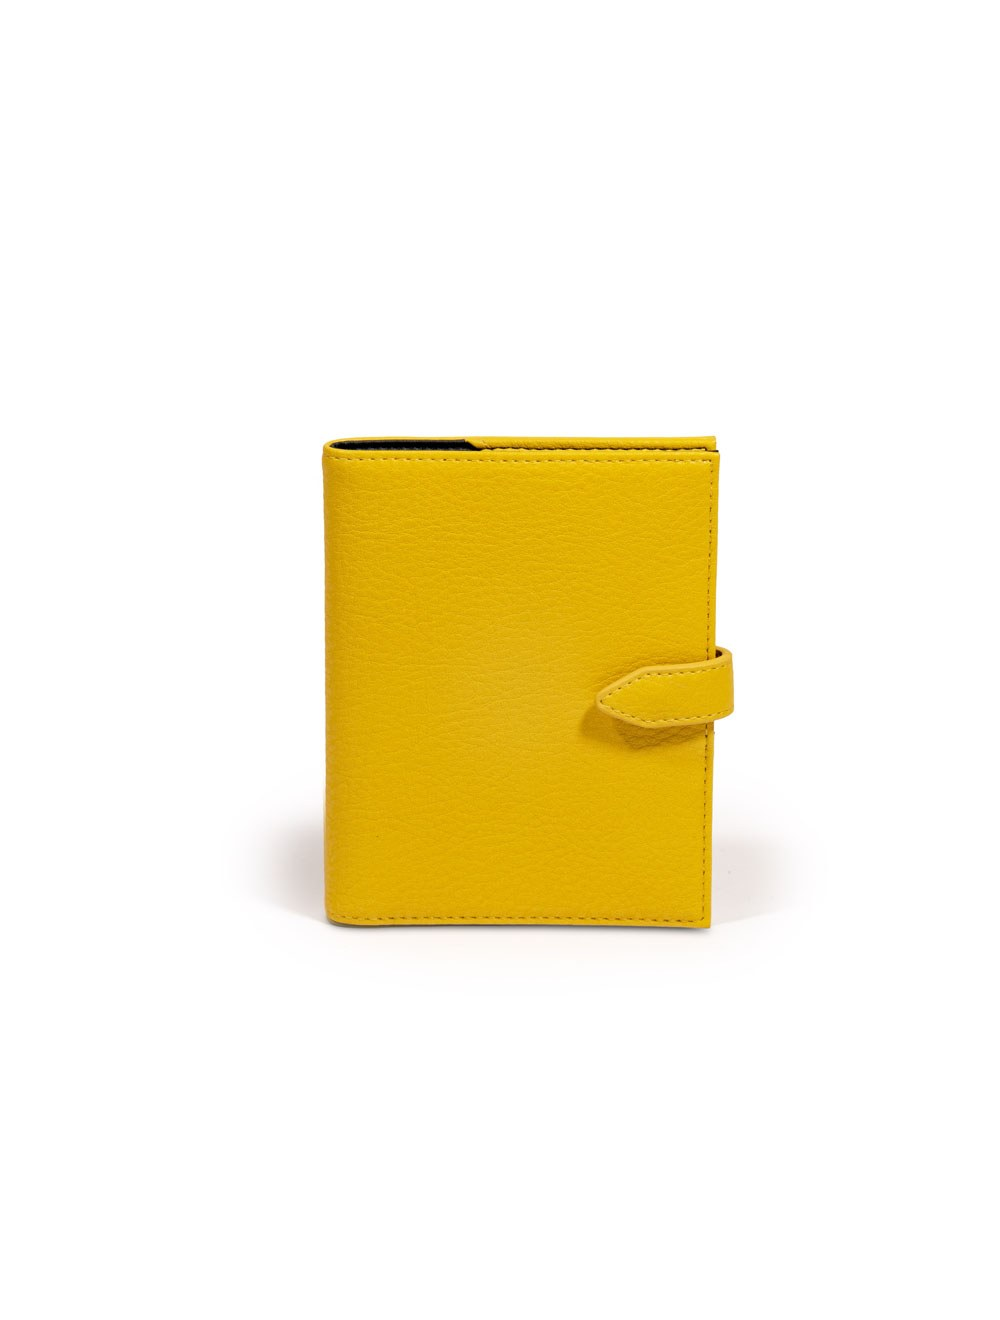 Passport Holder With Tab Closure